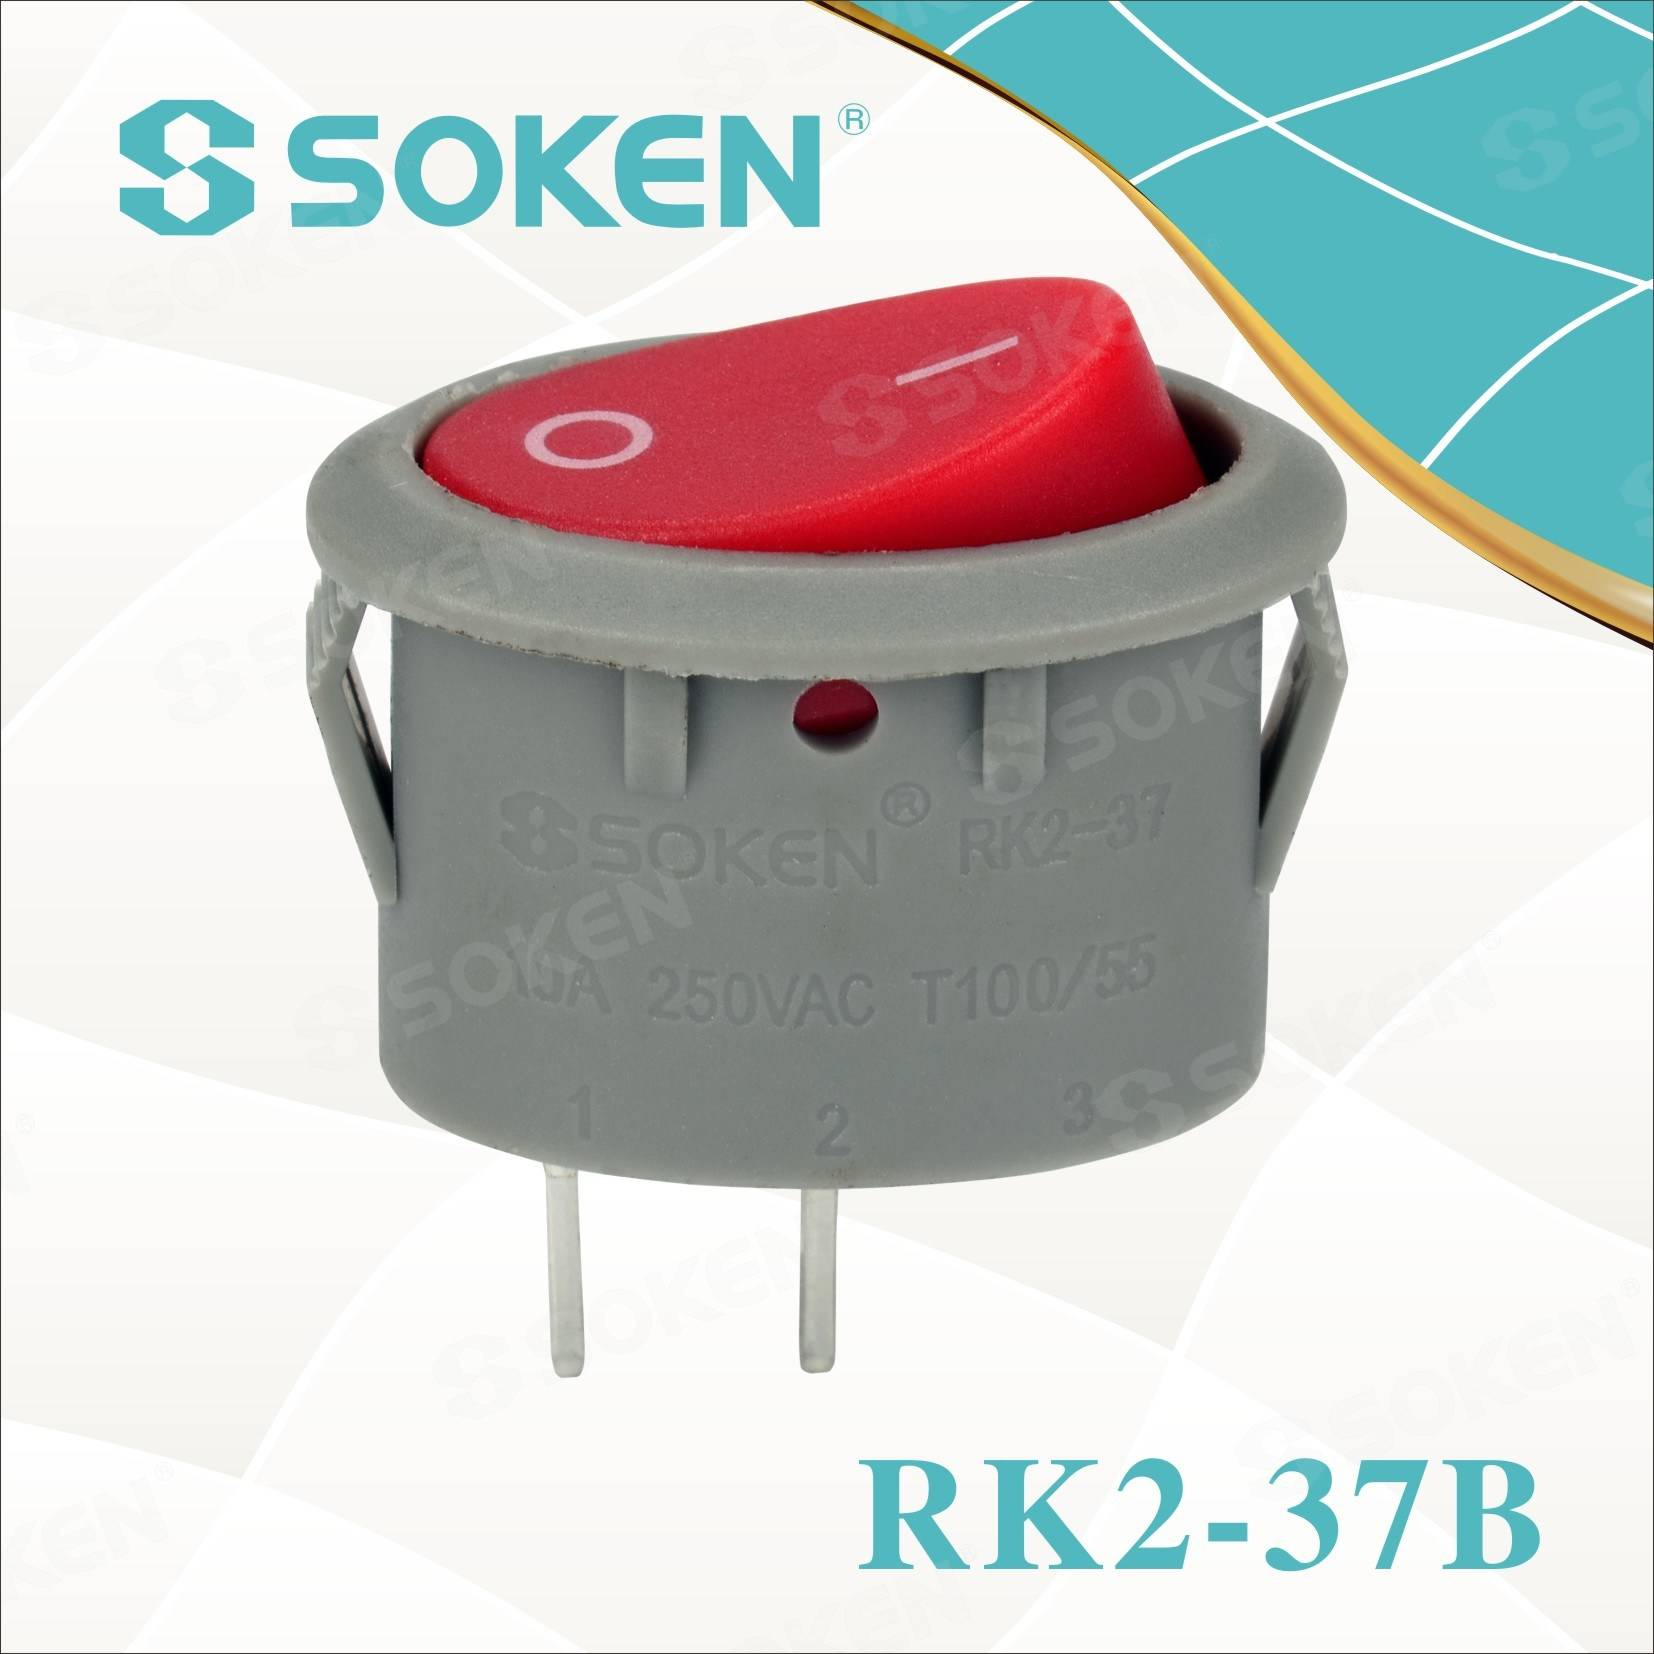 China Gold Supplier for Electric Rocker -